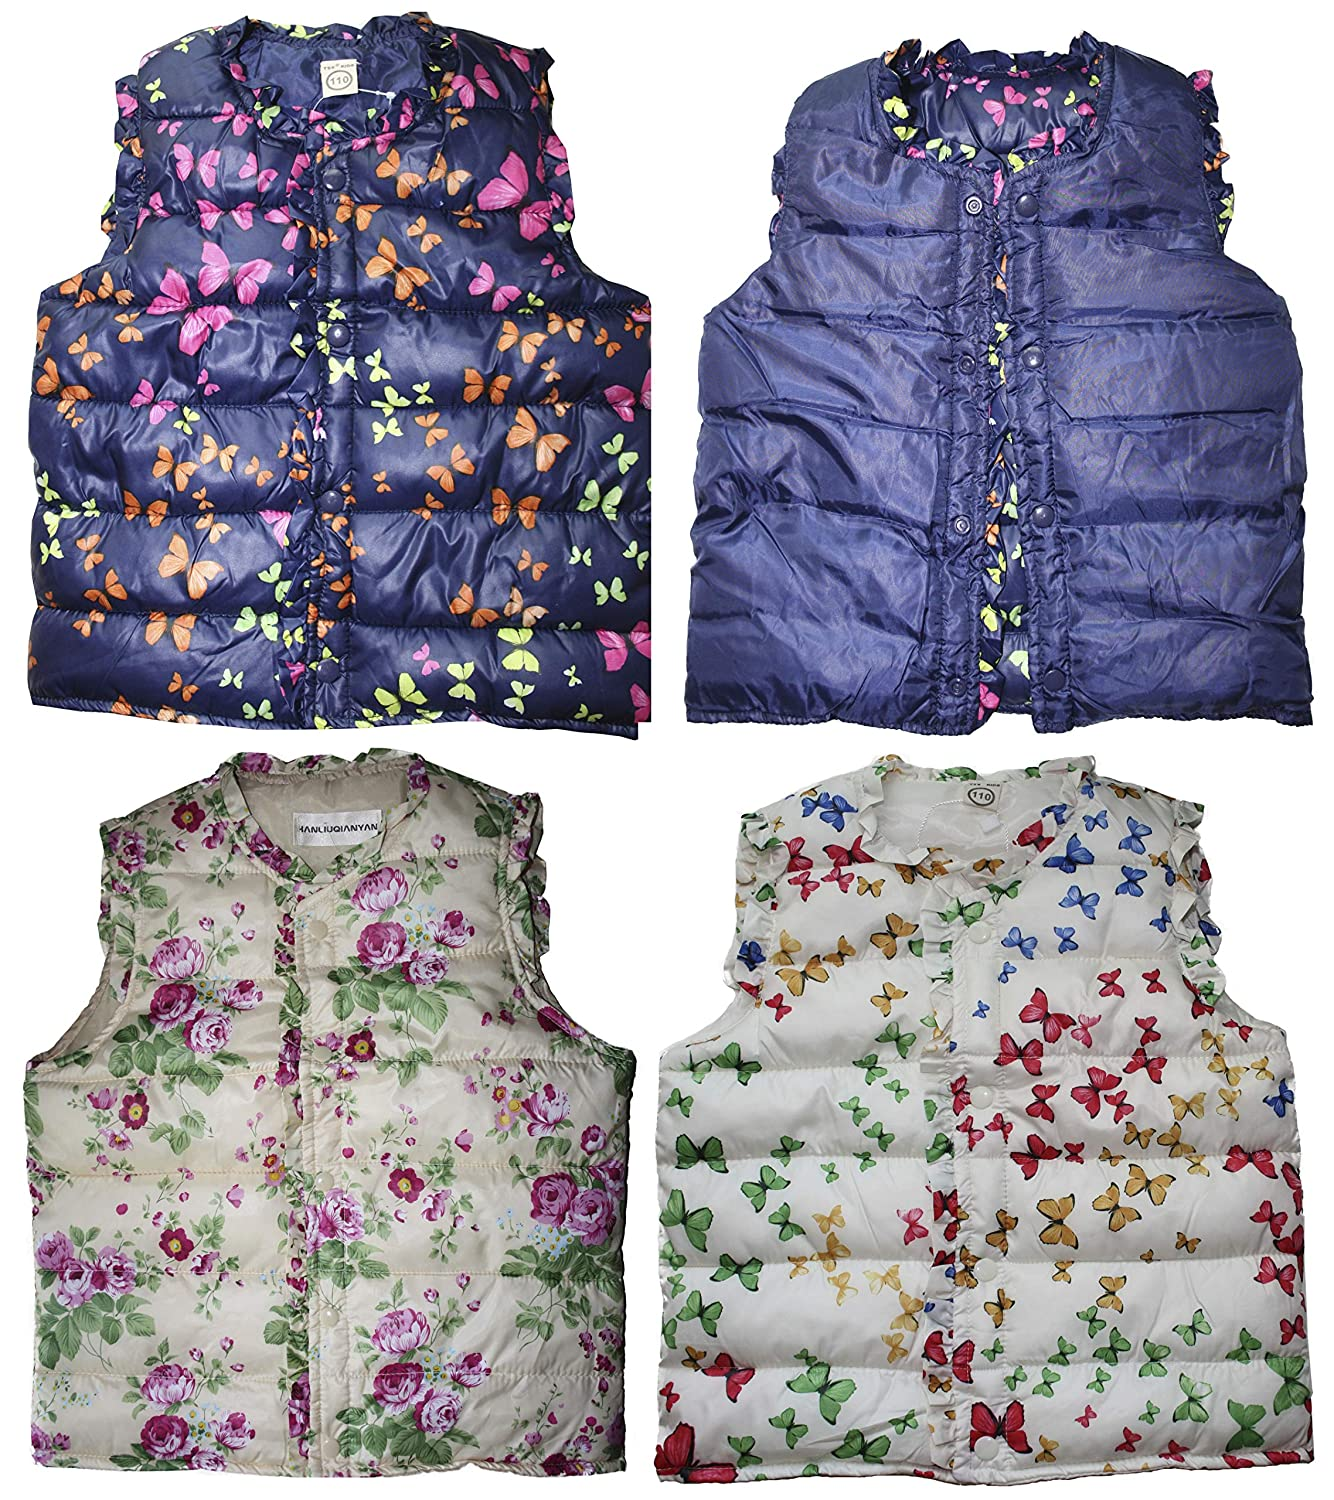 Averlexx Girl Winter Warm Vest Outwear Coat Kids Light Weight Padded Waistcoat